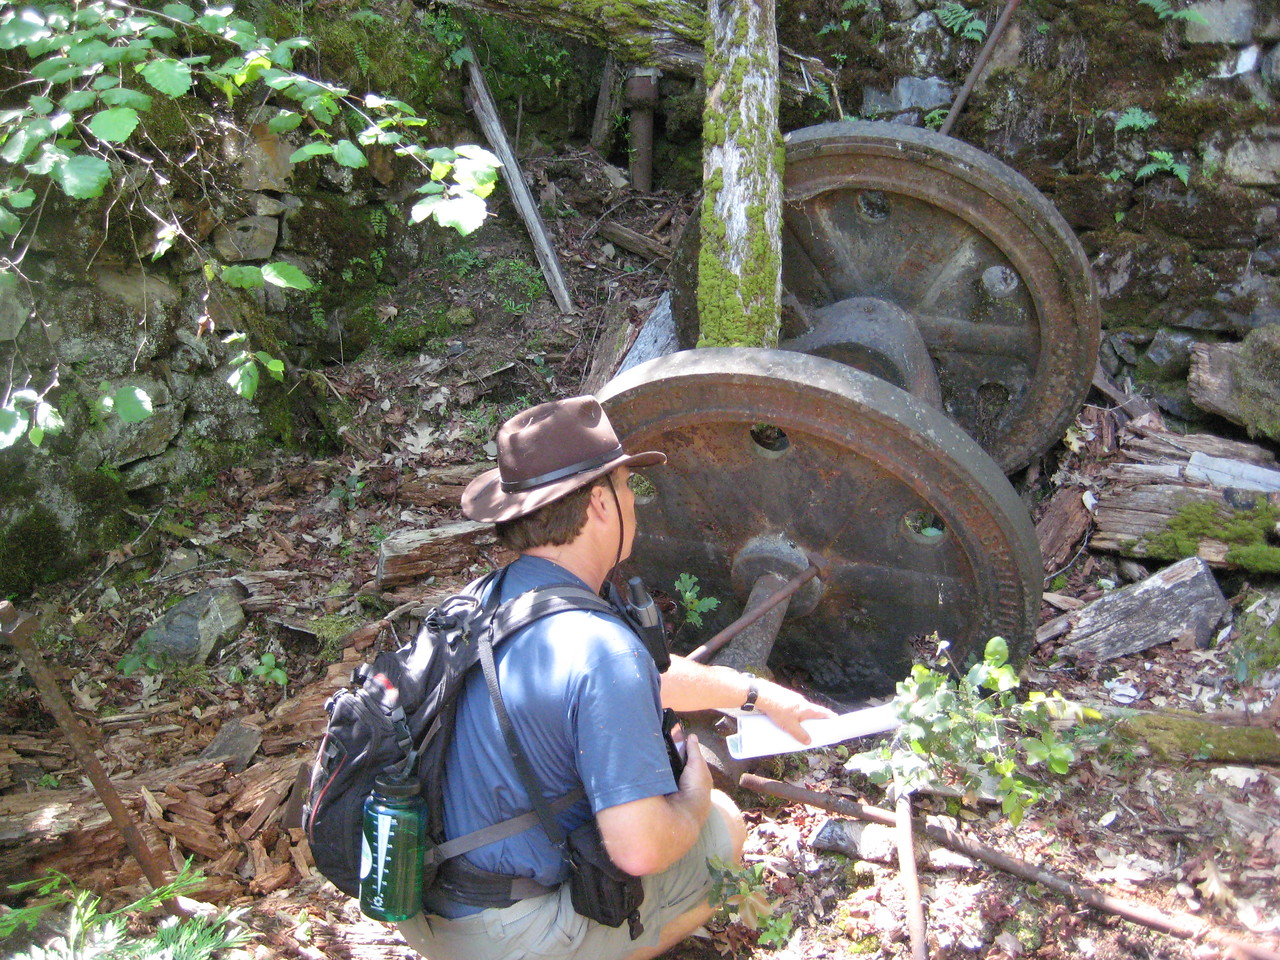 After a long 2 mile hike down to the river and trampling through poison oak, we came across the Keltz Mill.